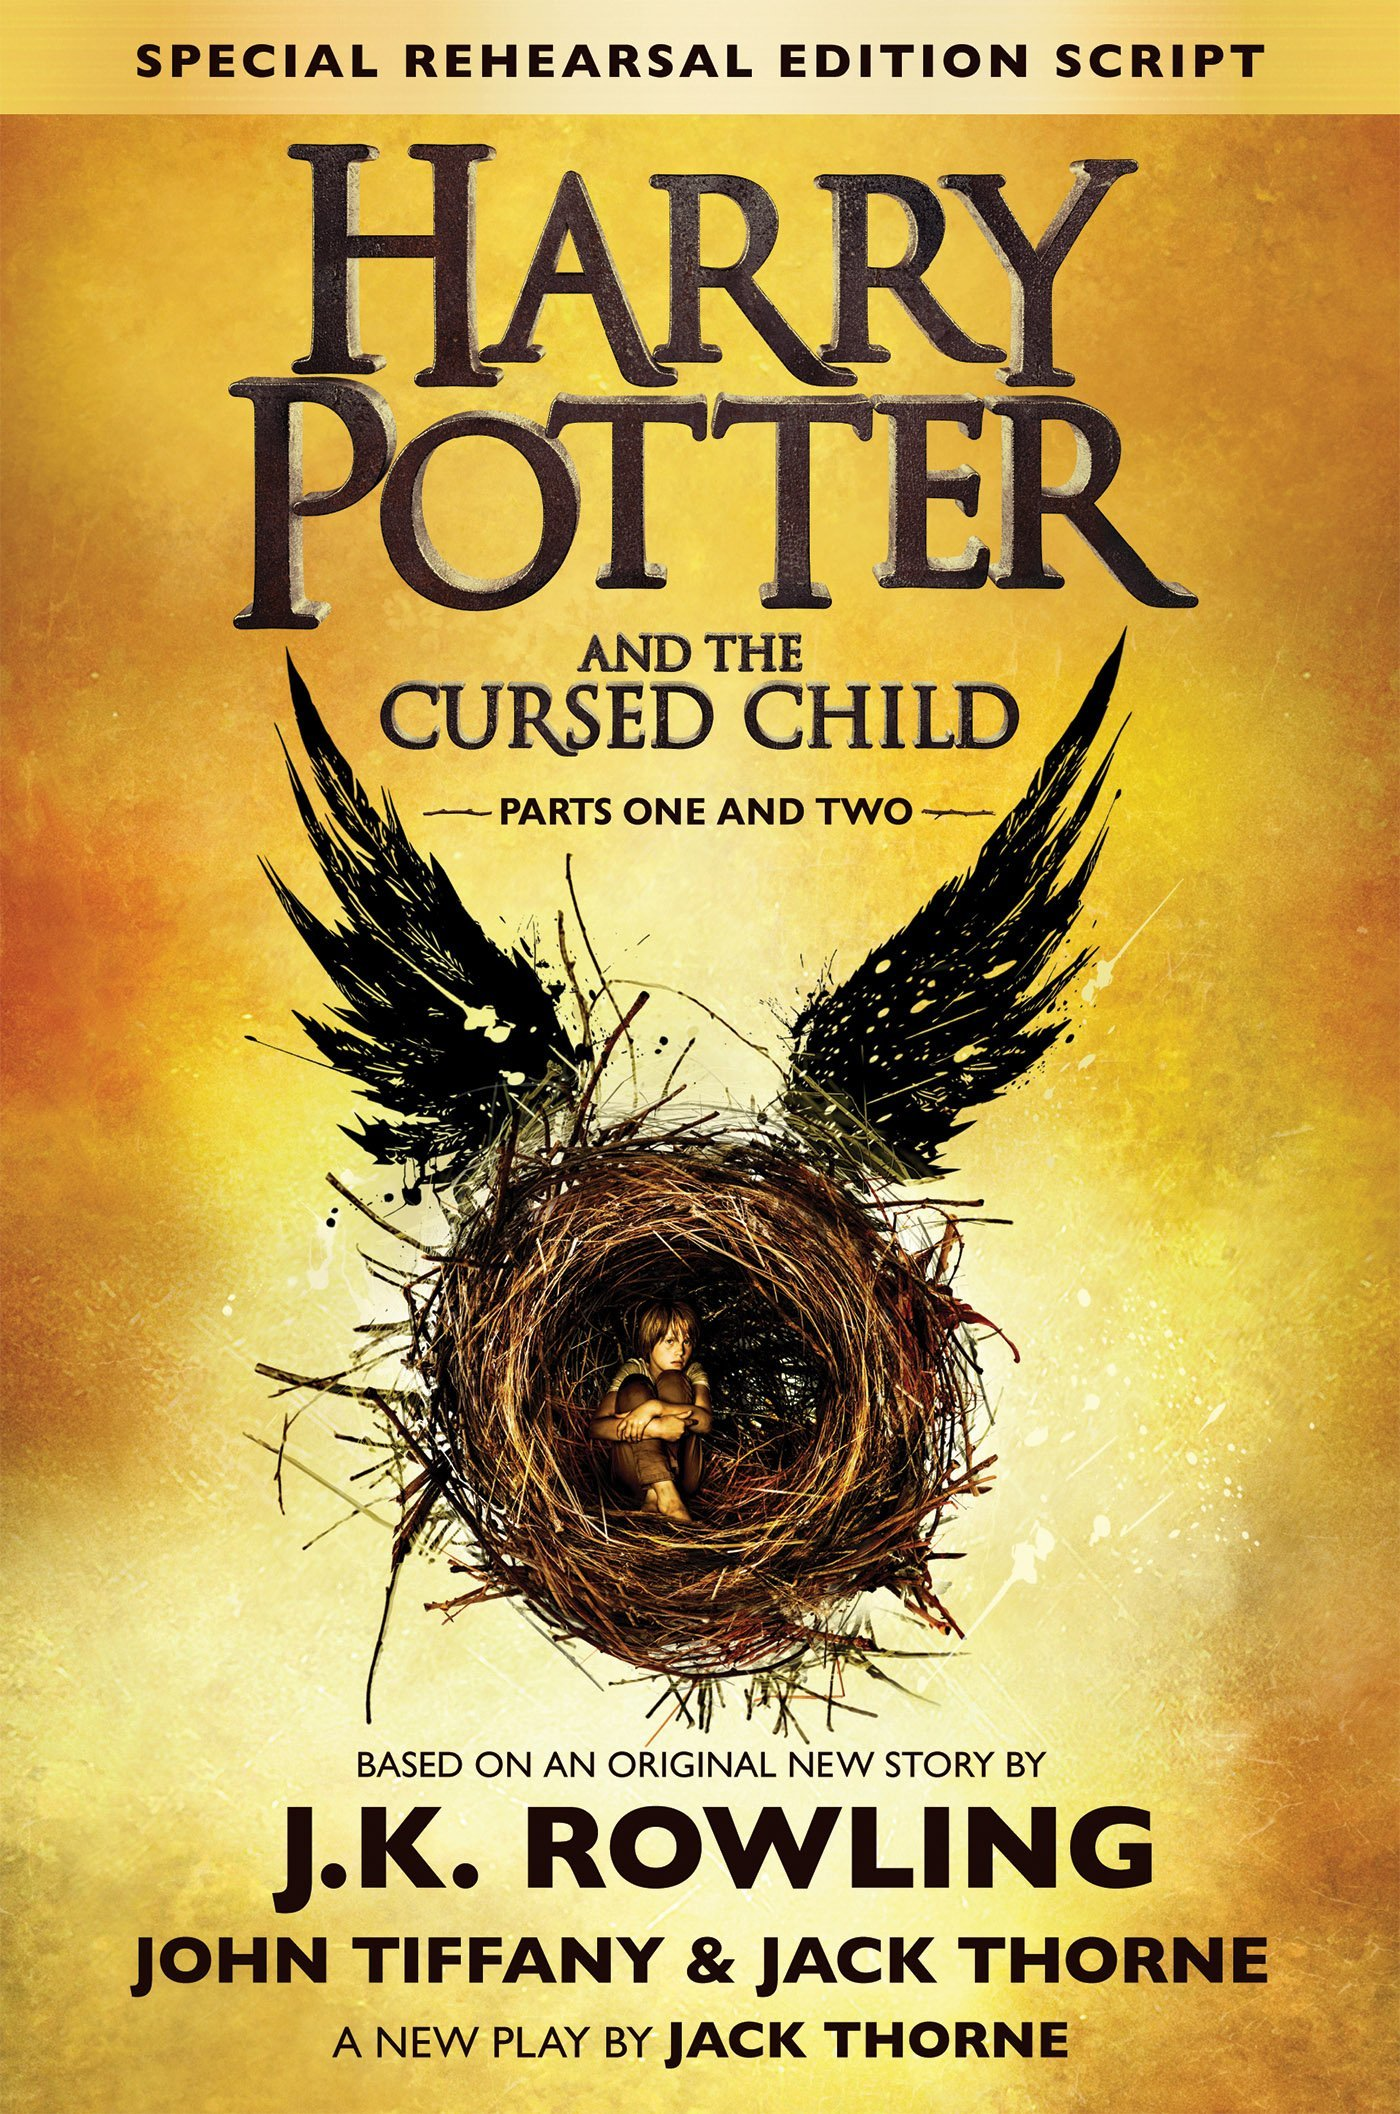 Harry_Potter_and_the_Cursed_Child.jpg